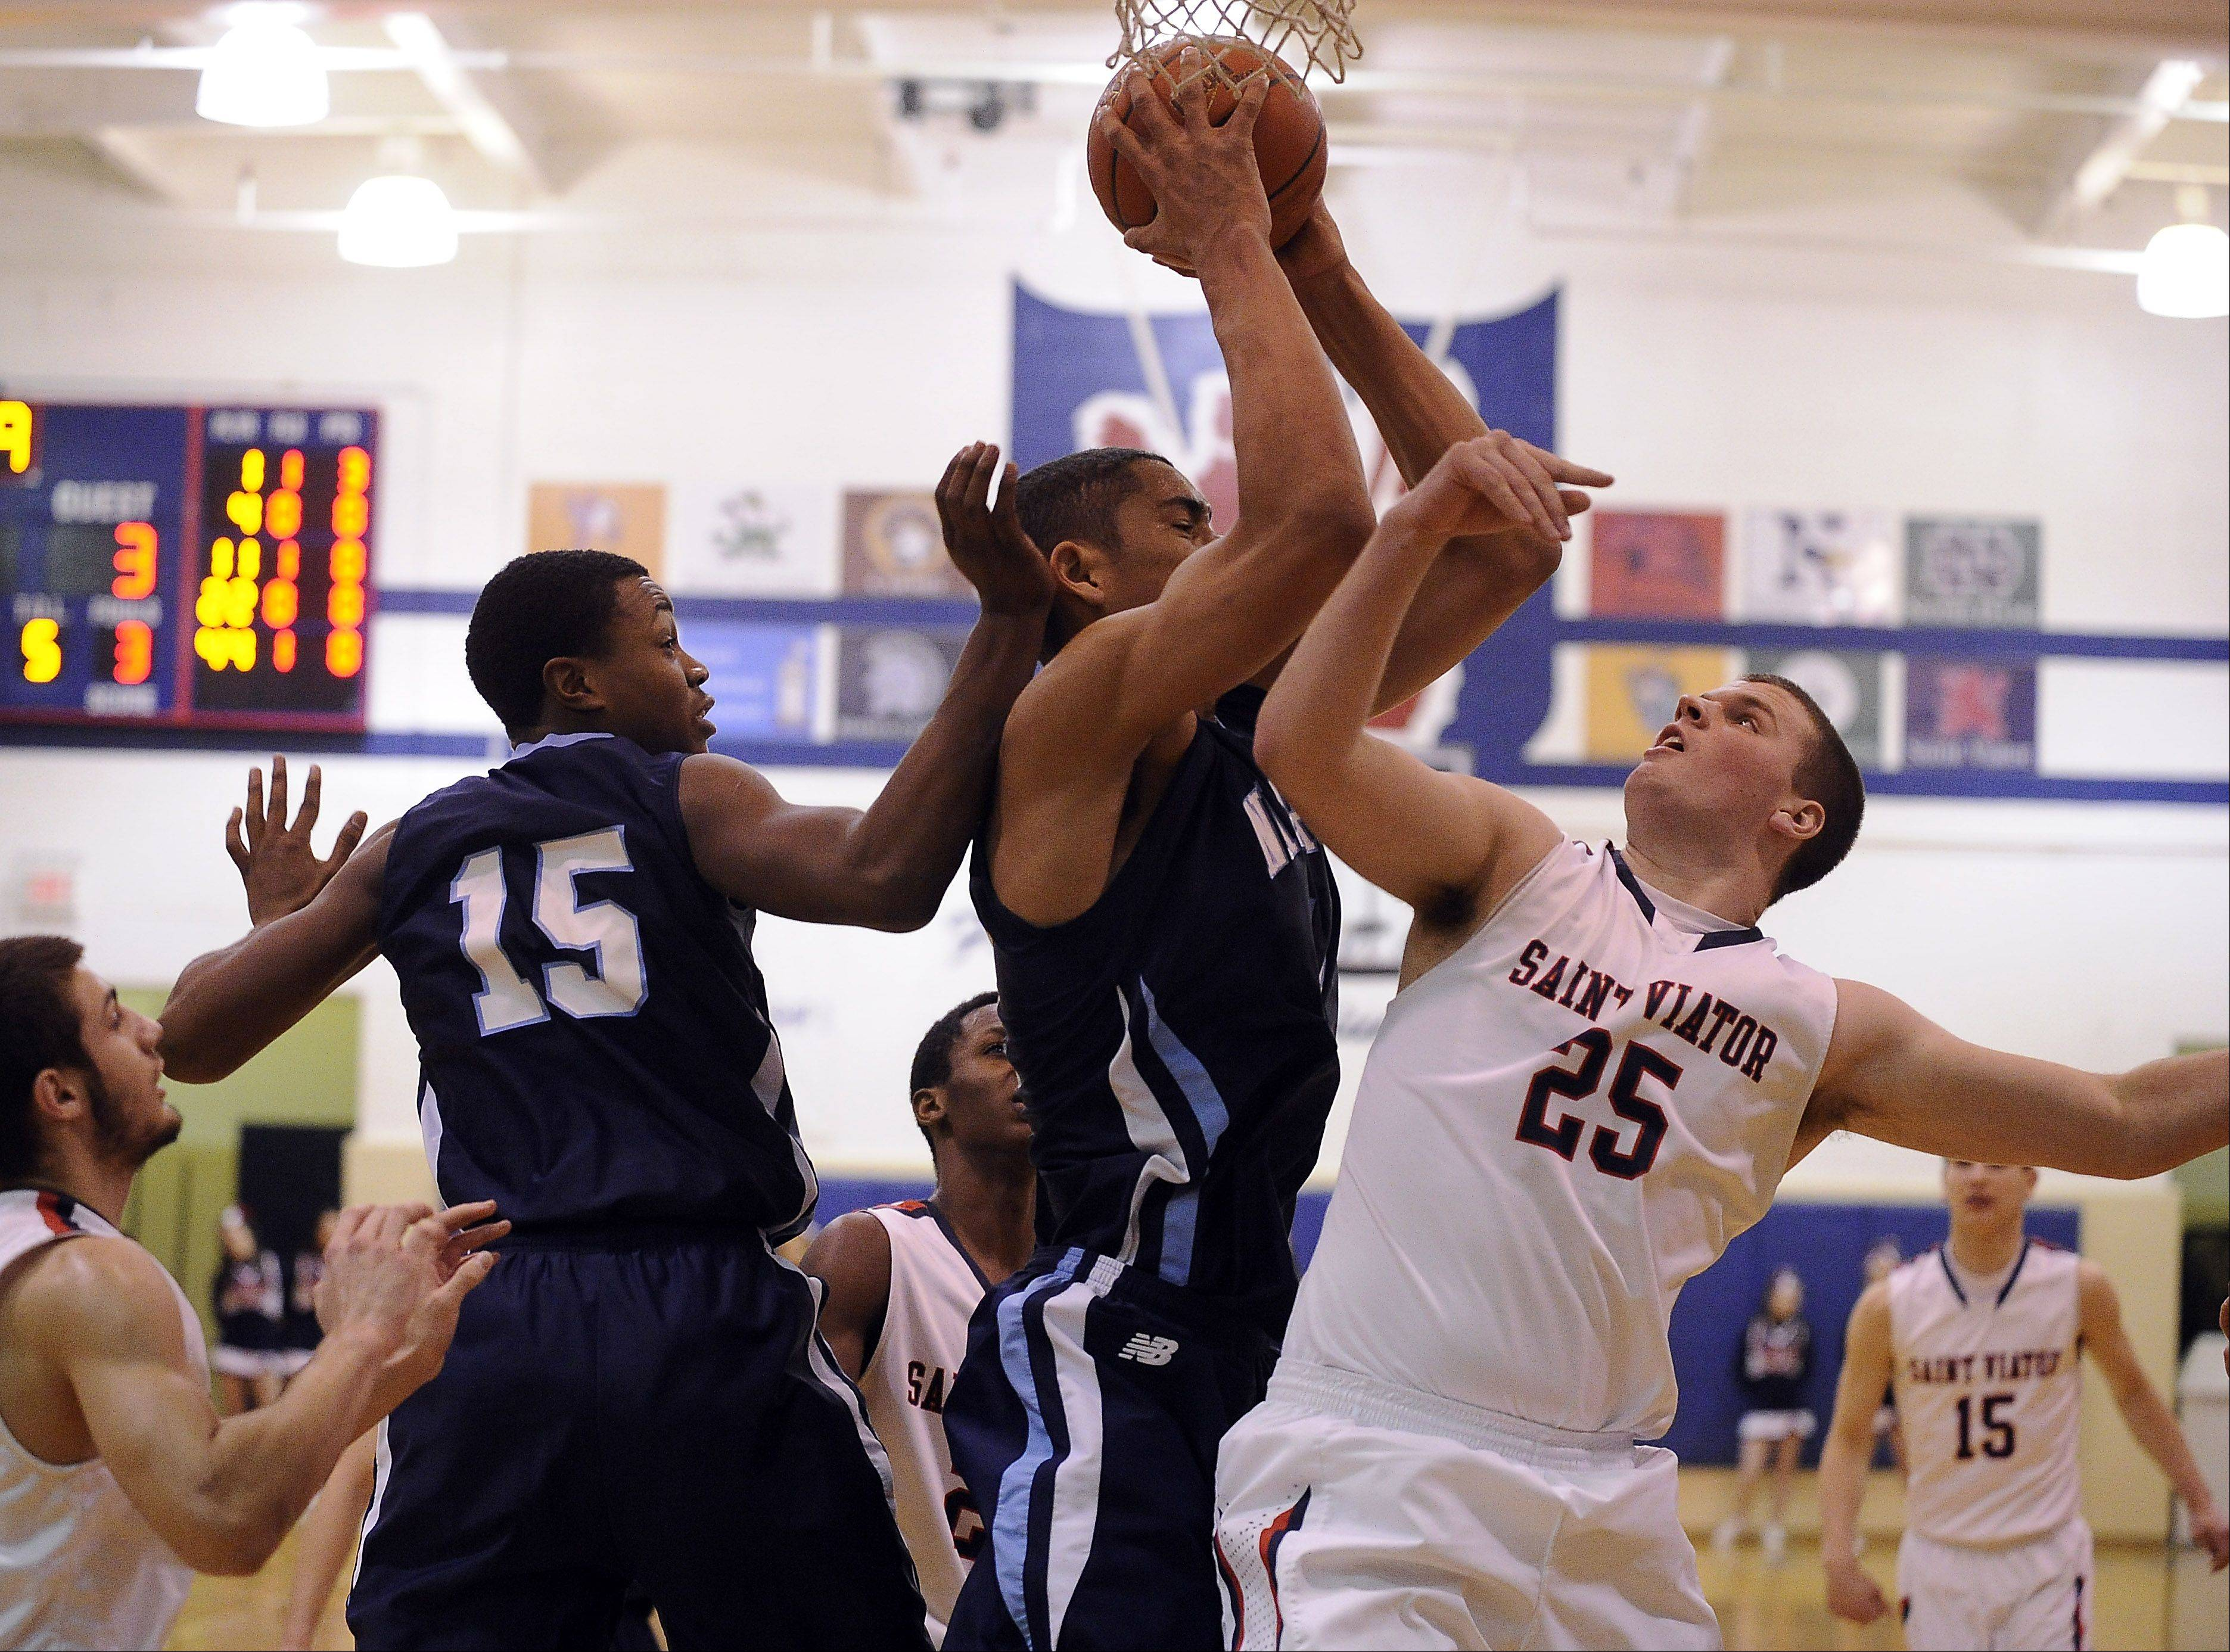 St. Viator's Hugh Masterson battles with Nazareth's Tyler Jackson for a rebound in the first half.